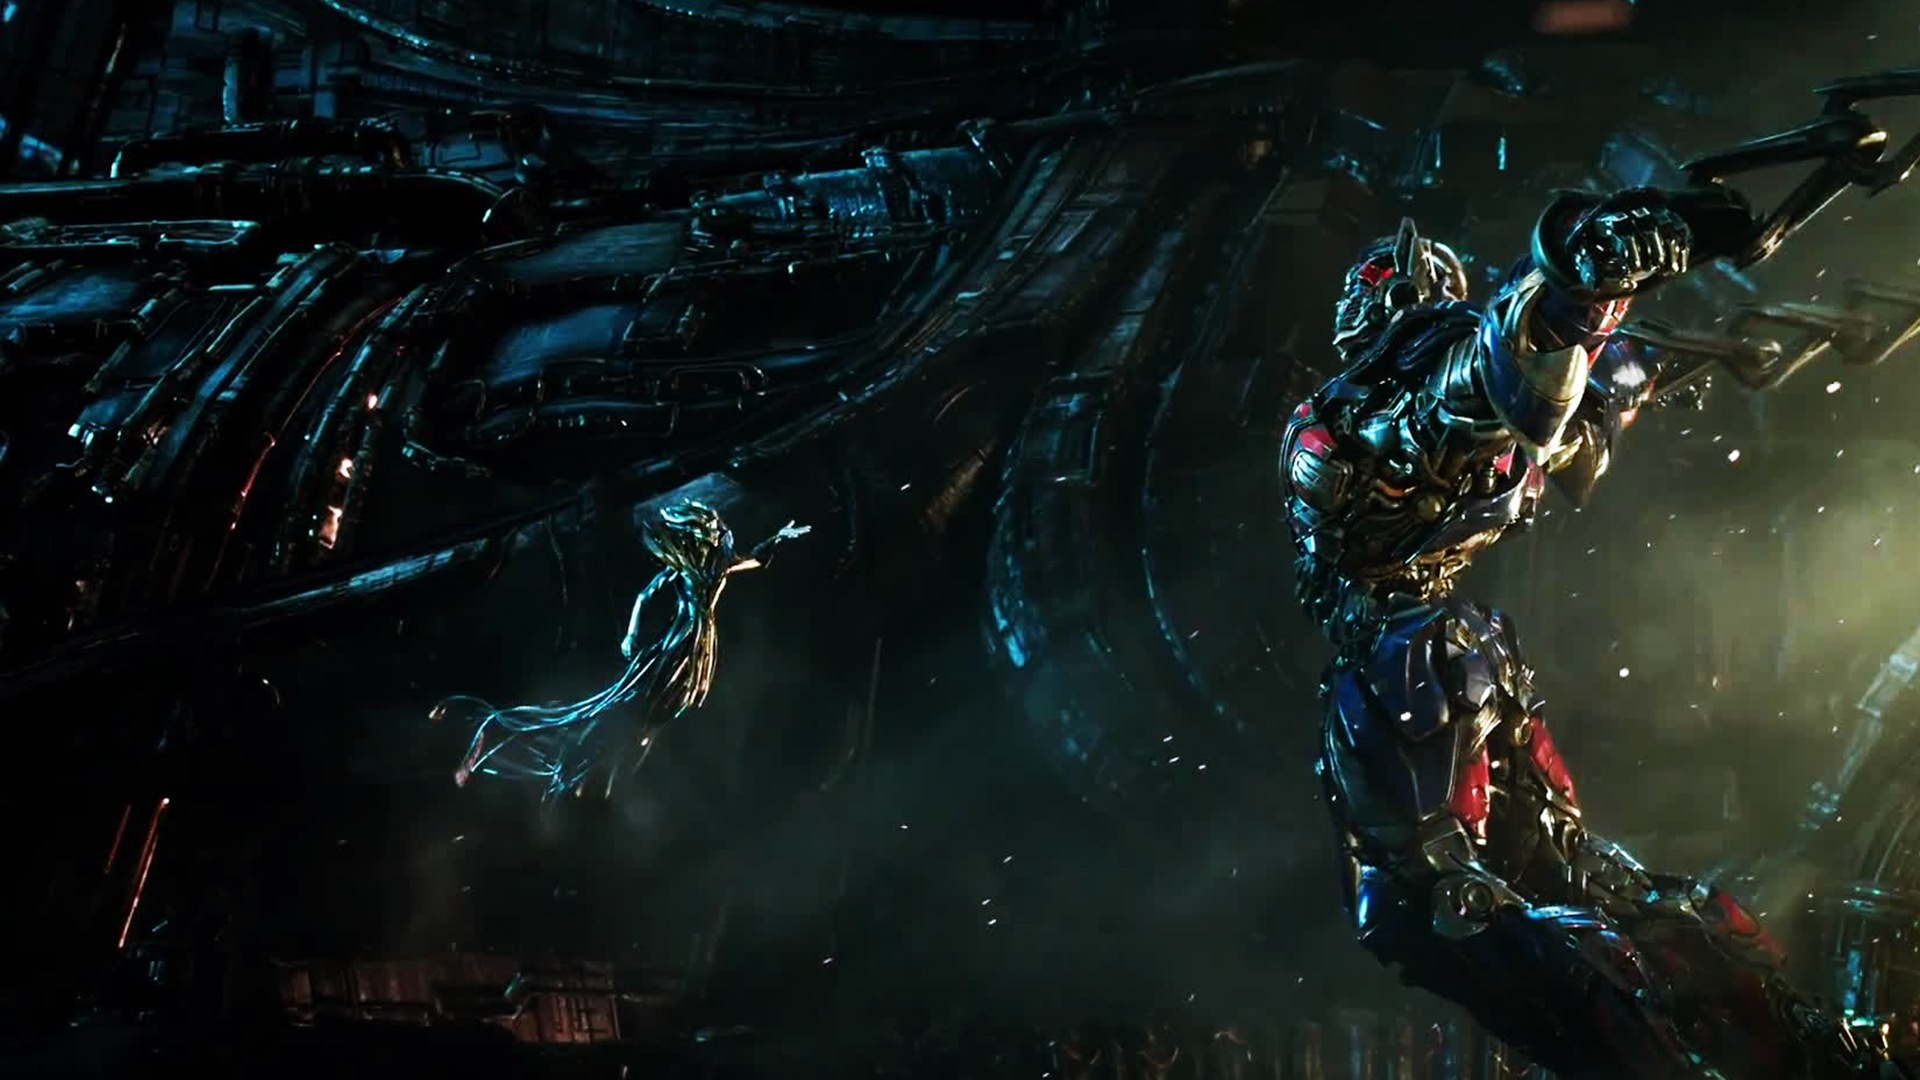 Transformers The Last Knight Hd Wallpapers Optimus Prime And